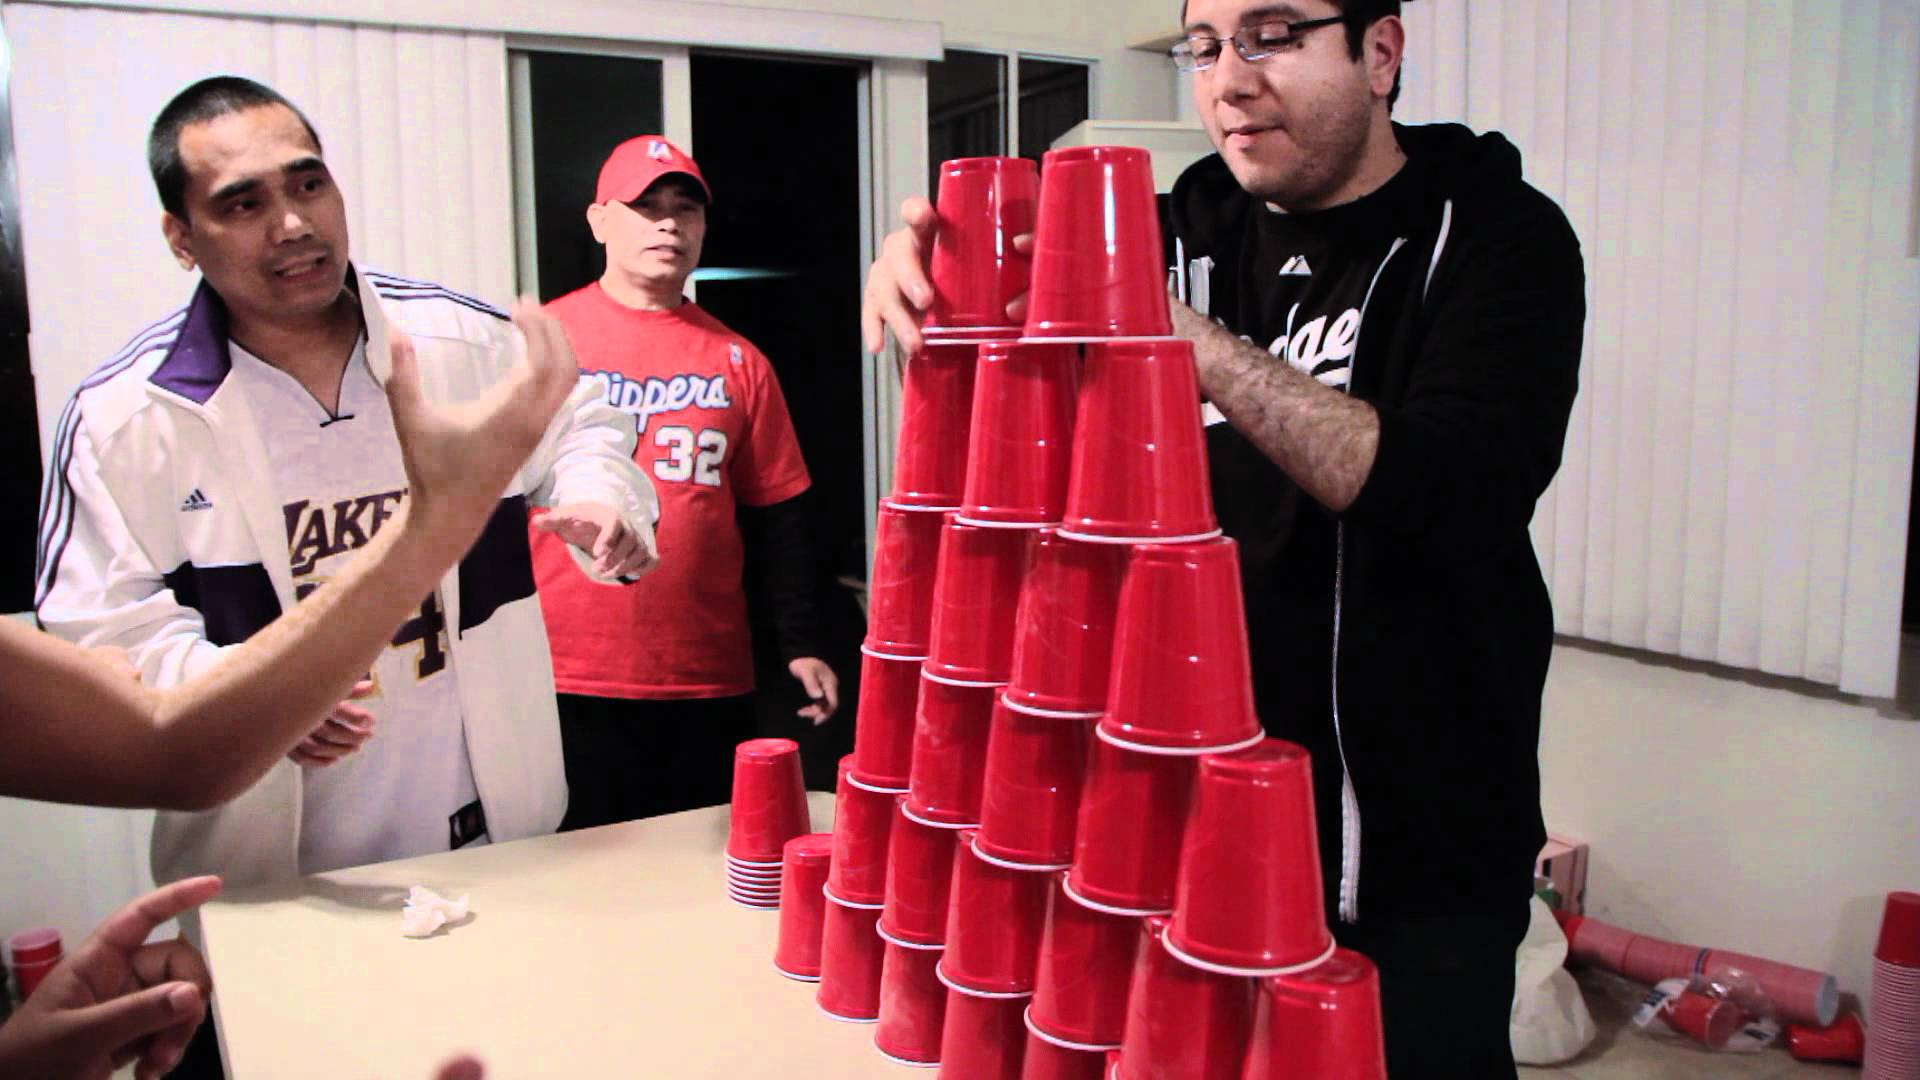 Games for freshers party